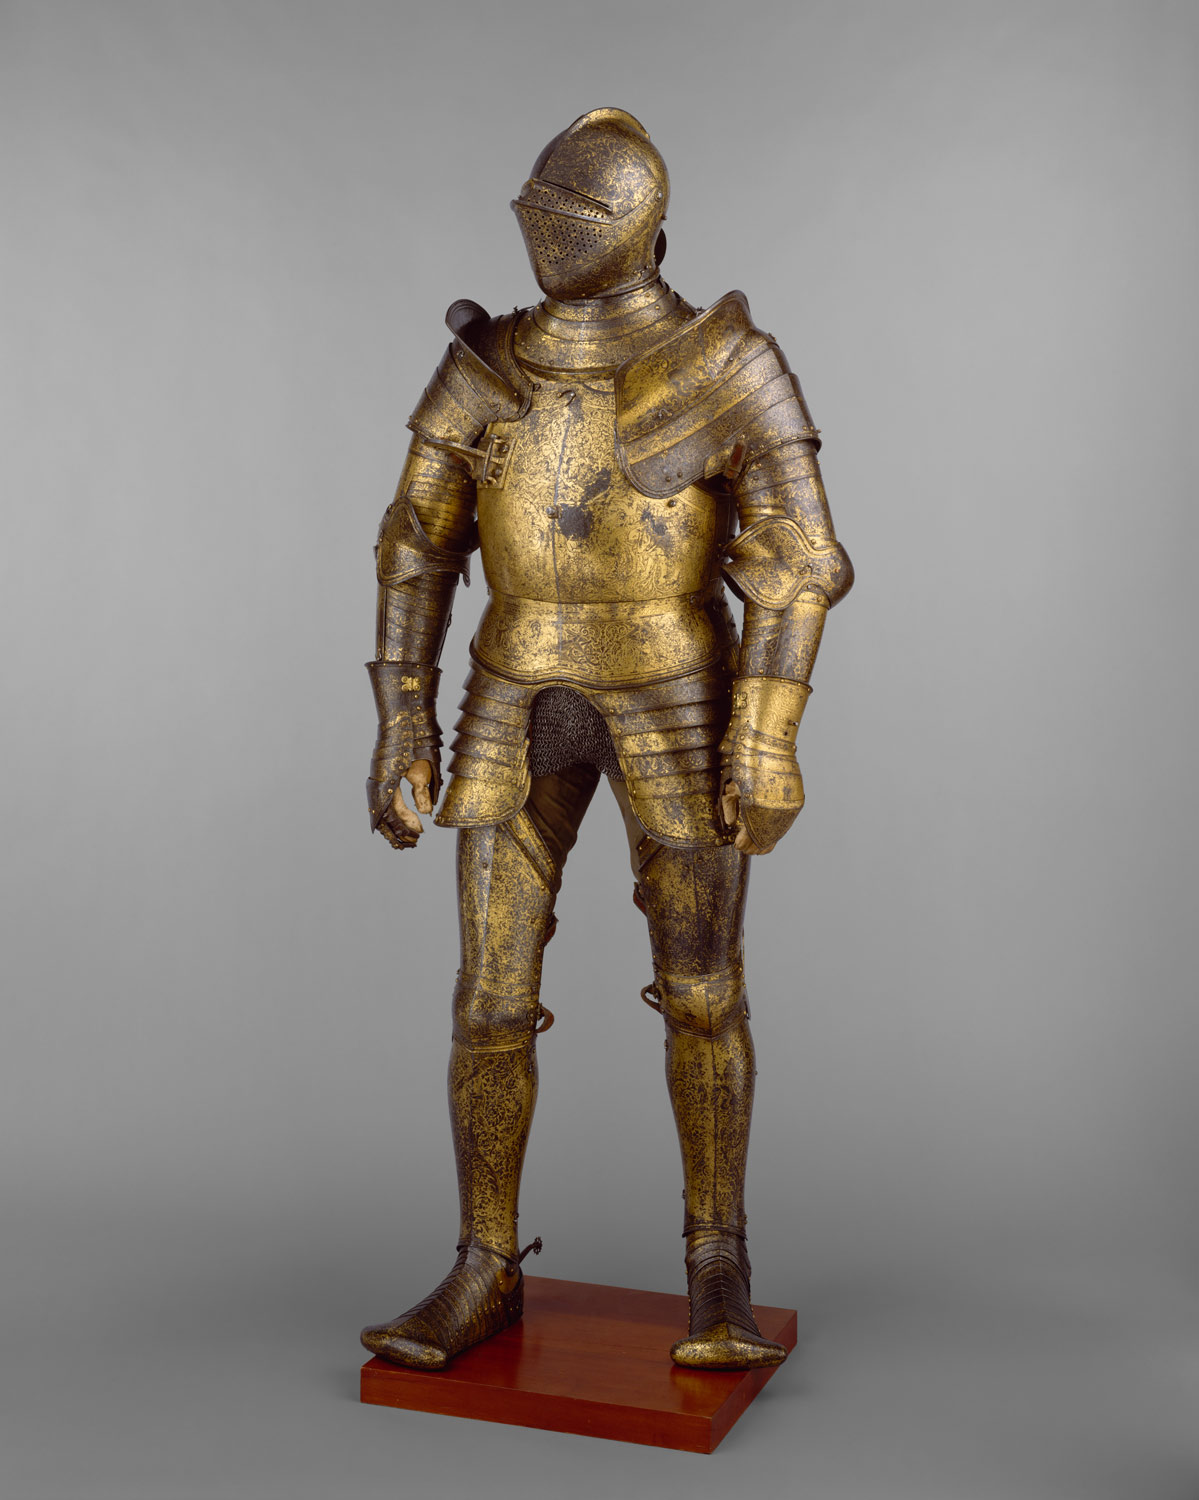 armor garniture probably of king henry viii of england reigned armor garniture probably of king henry viii of england reigned 1509 47